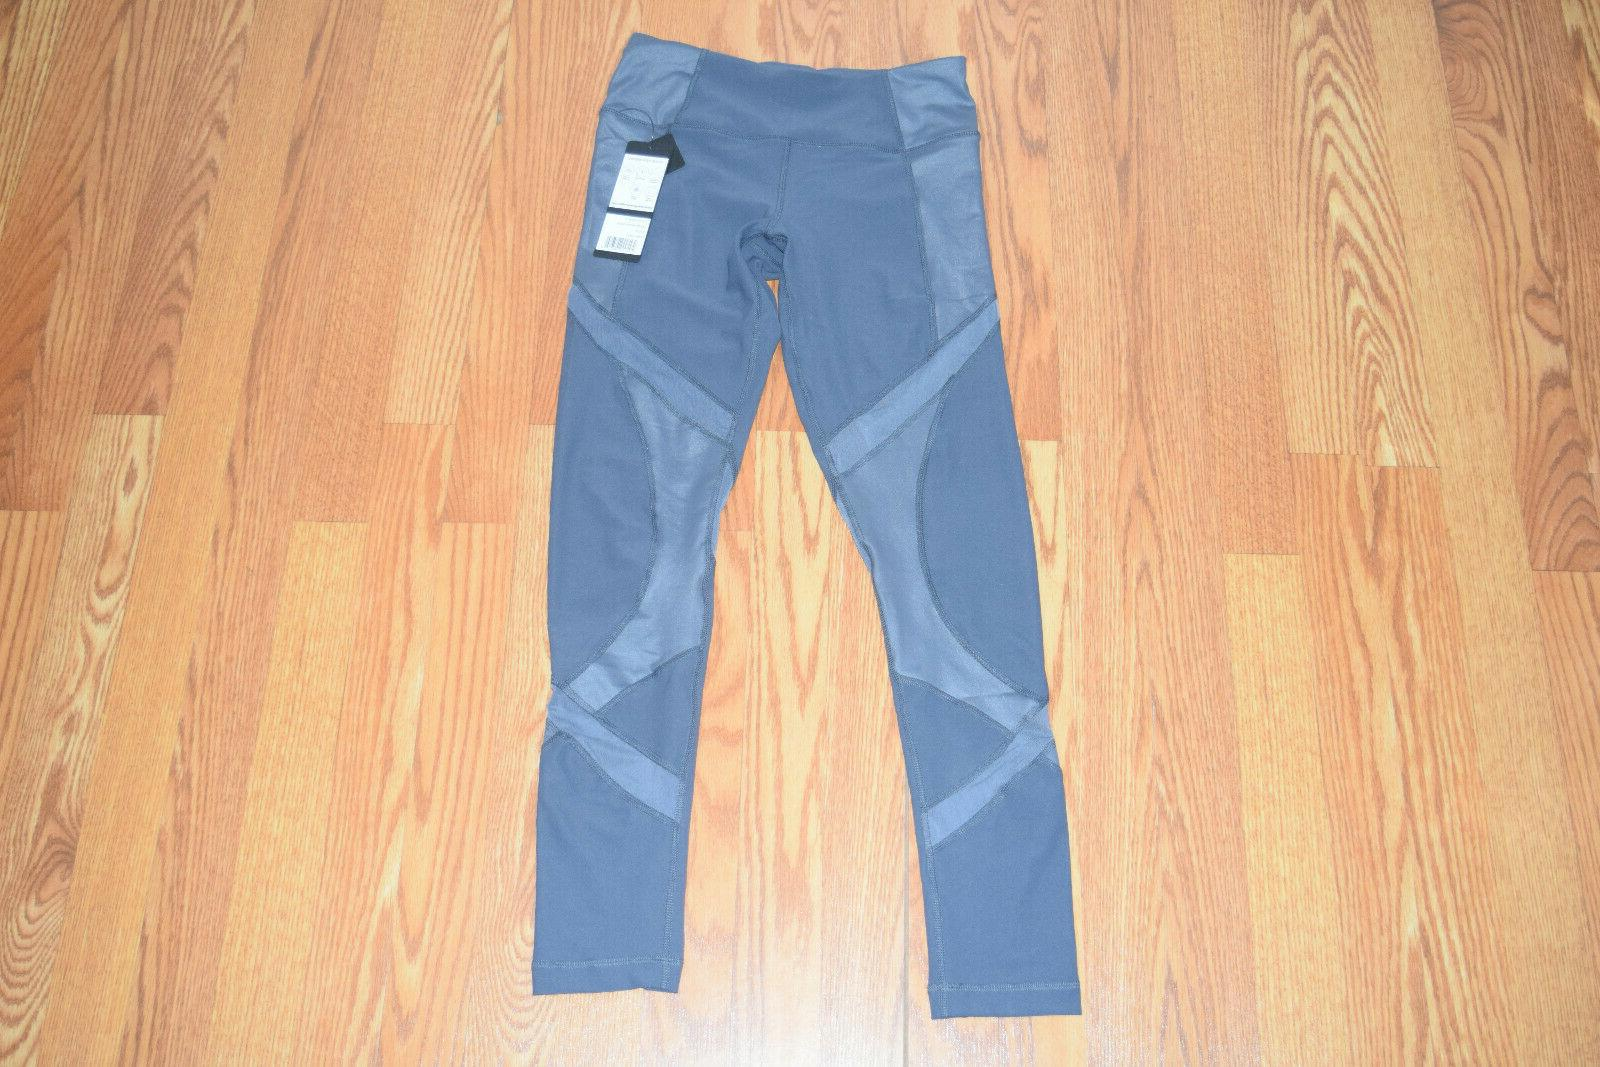 nwt womens gray active exercise running pants